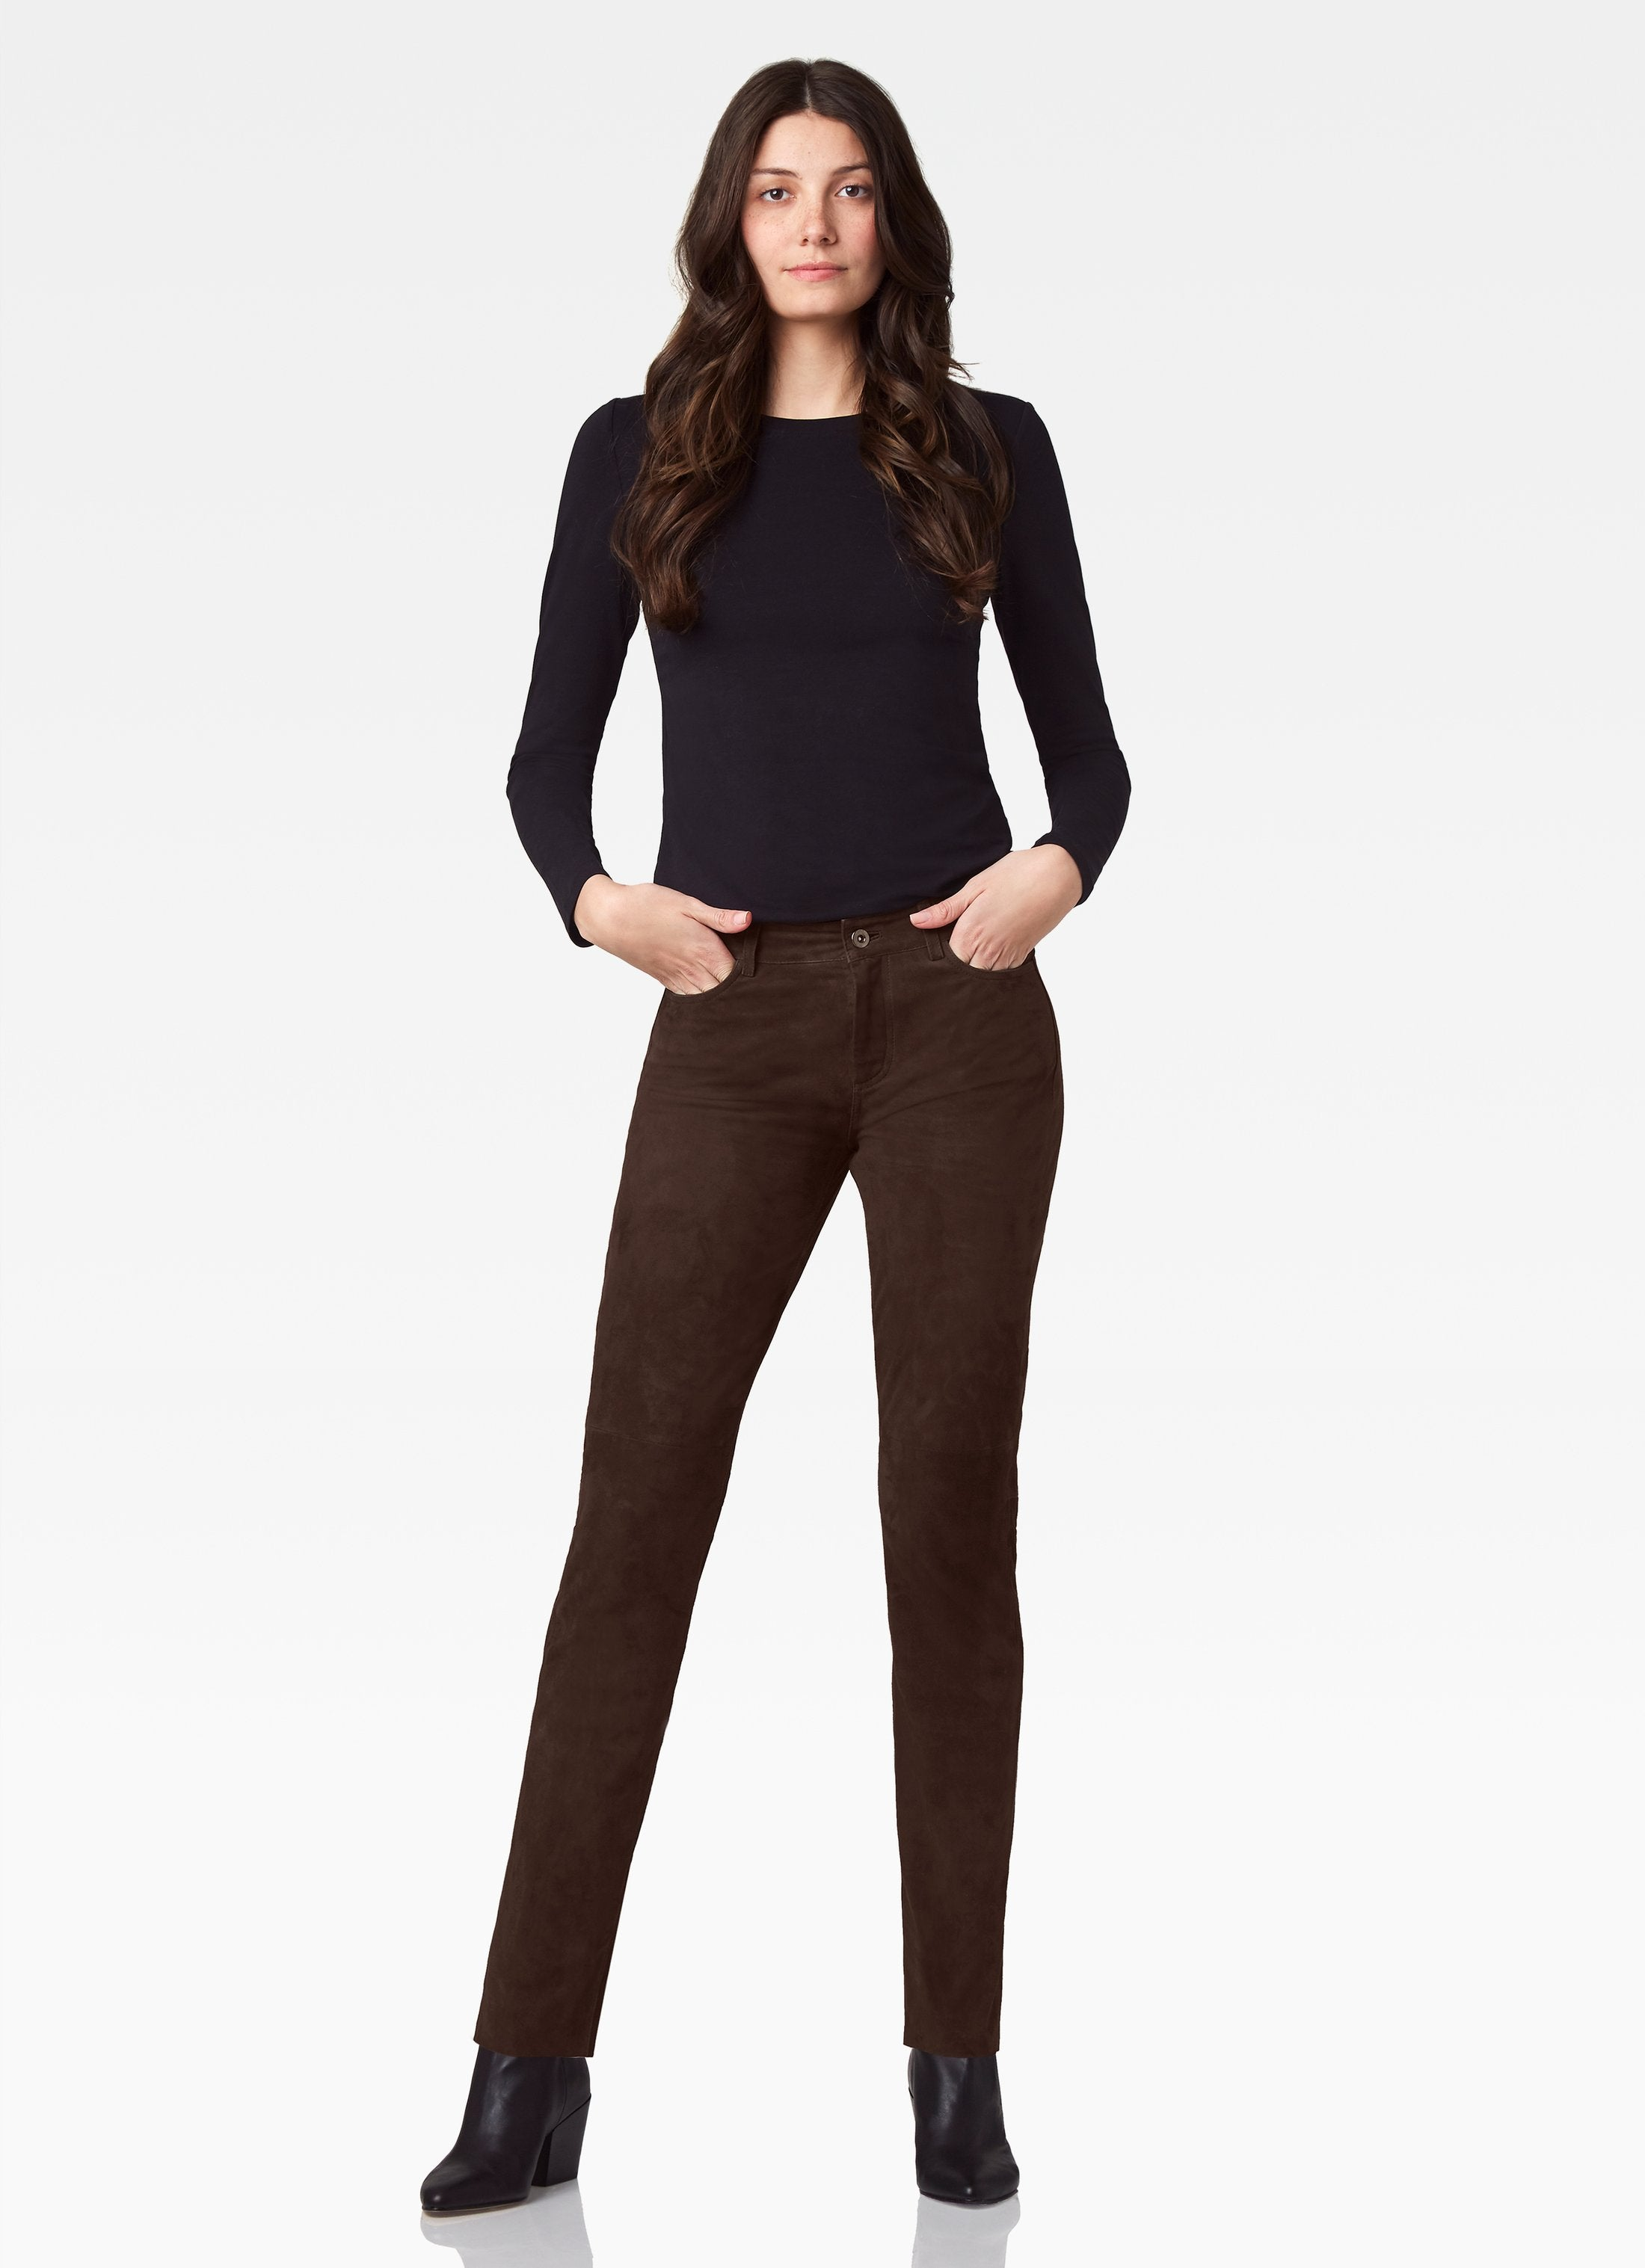 Hudson 5 Pocket Straight Leg Jean - Cocoa